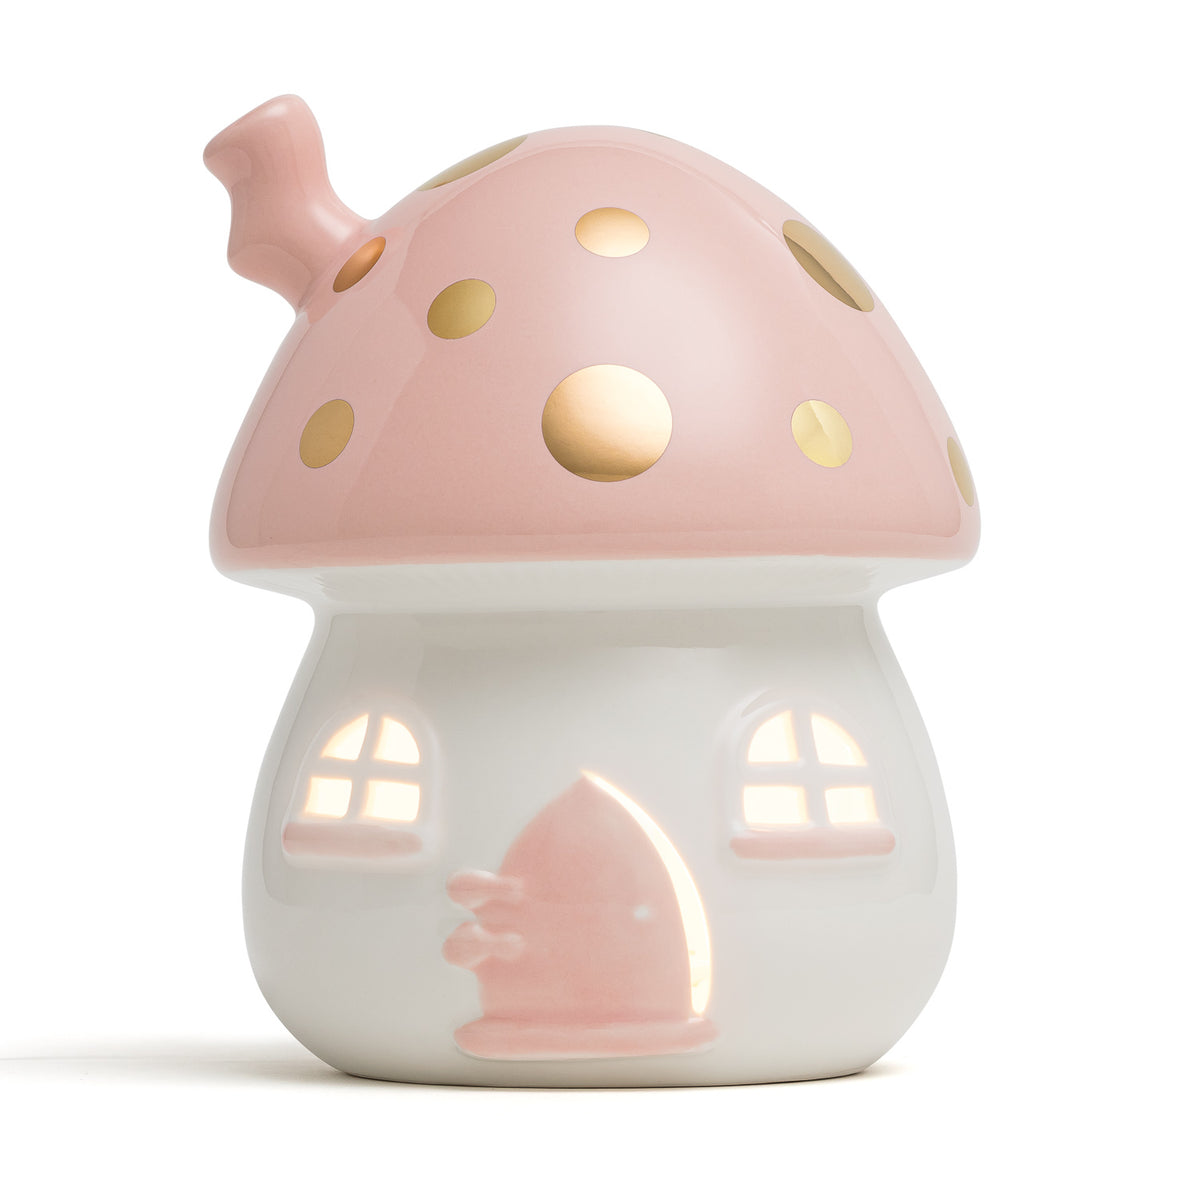 Fairy House Nightlight - Pink and Gold |Plug-in|